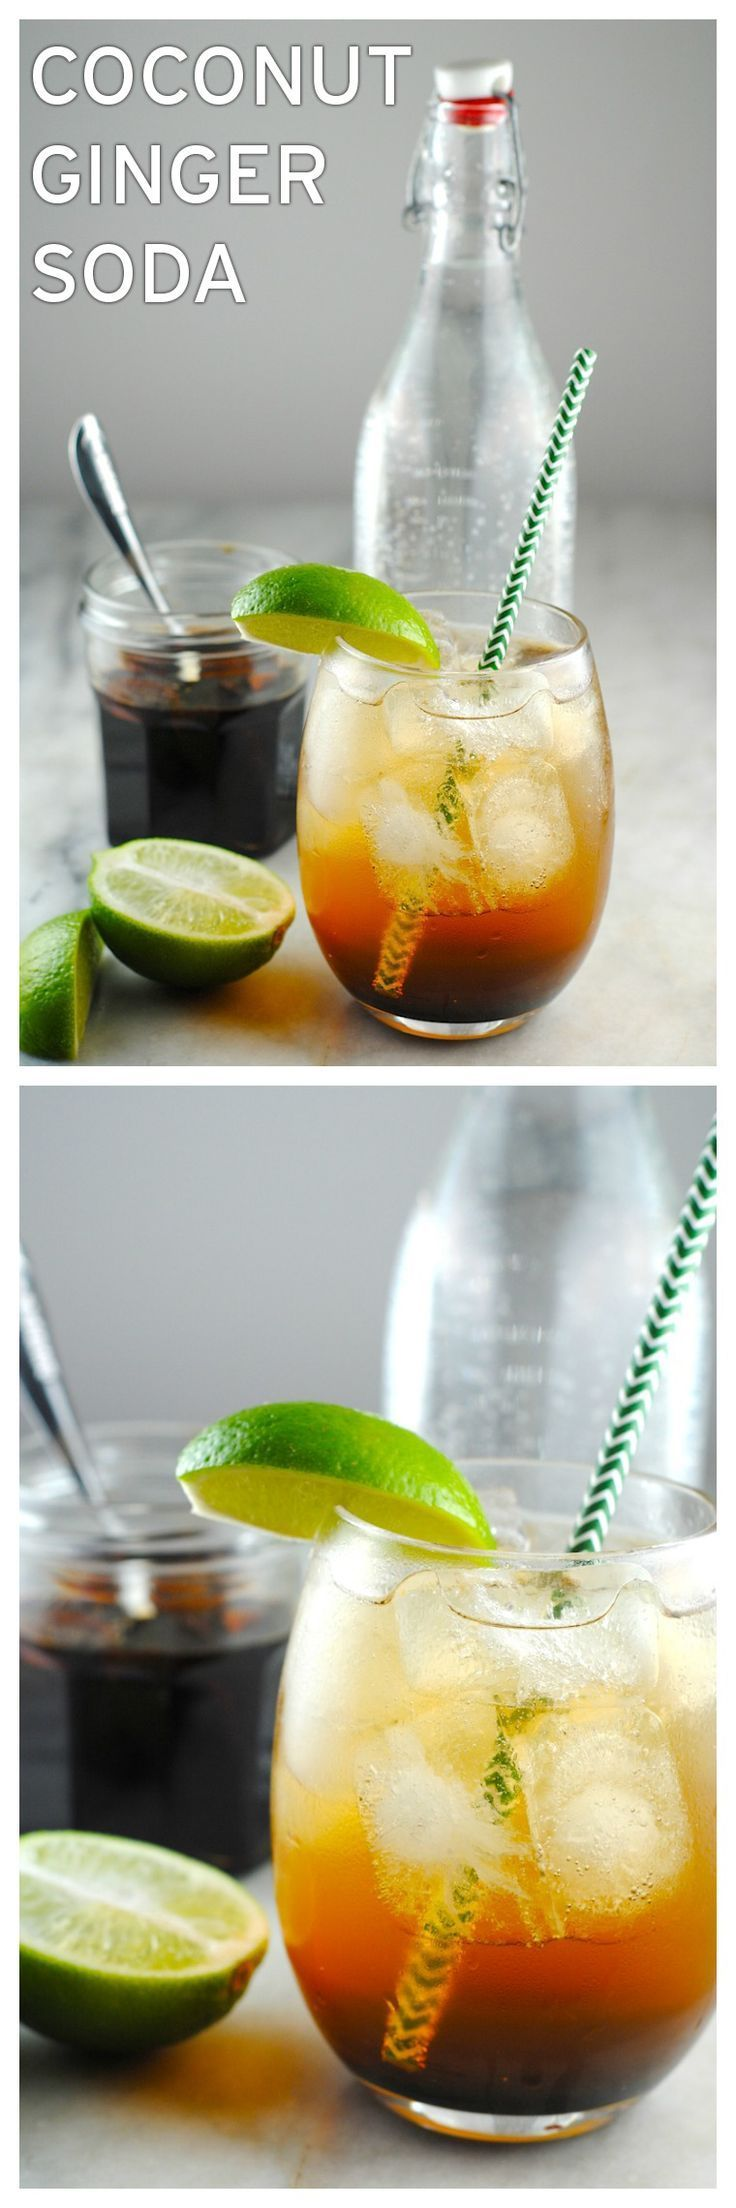 This coconut ginger soda is made with a concentrate of coconut sugar and ginger. It tastes great with sparkling water but you could put it on vanilla ice cream or add it to a cocktail. Yum!  http://theblenderist.com/coconut-ginger-soda/